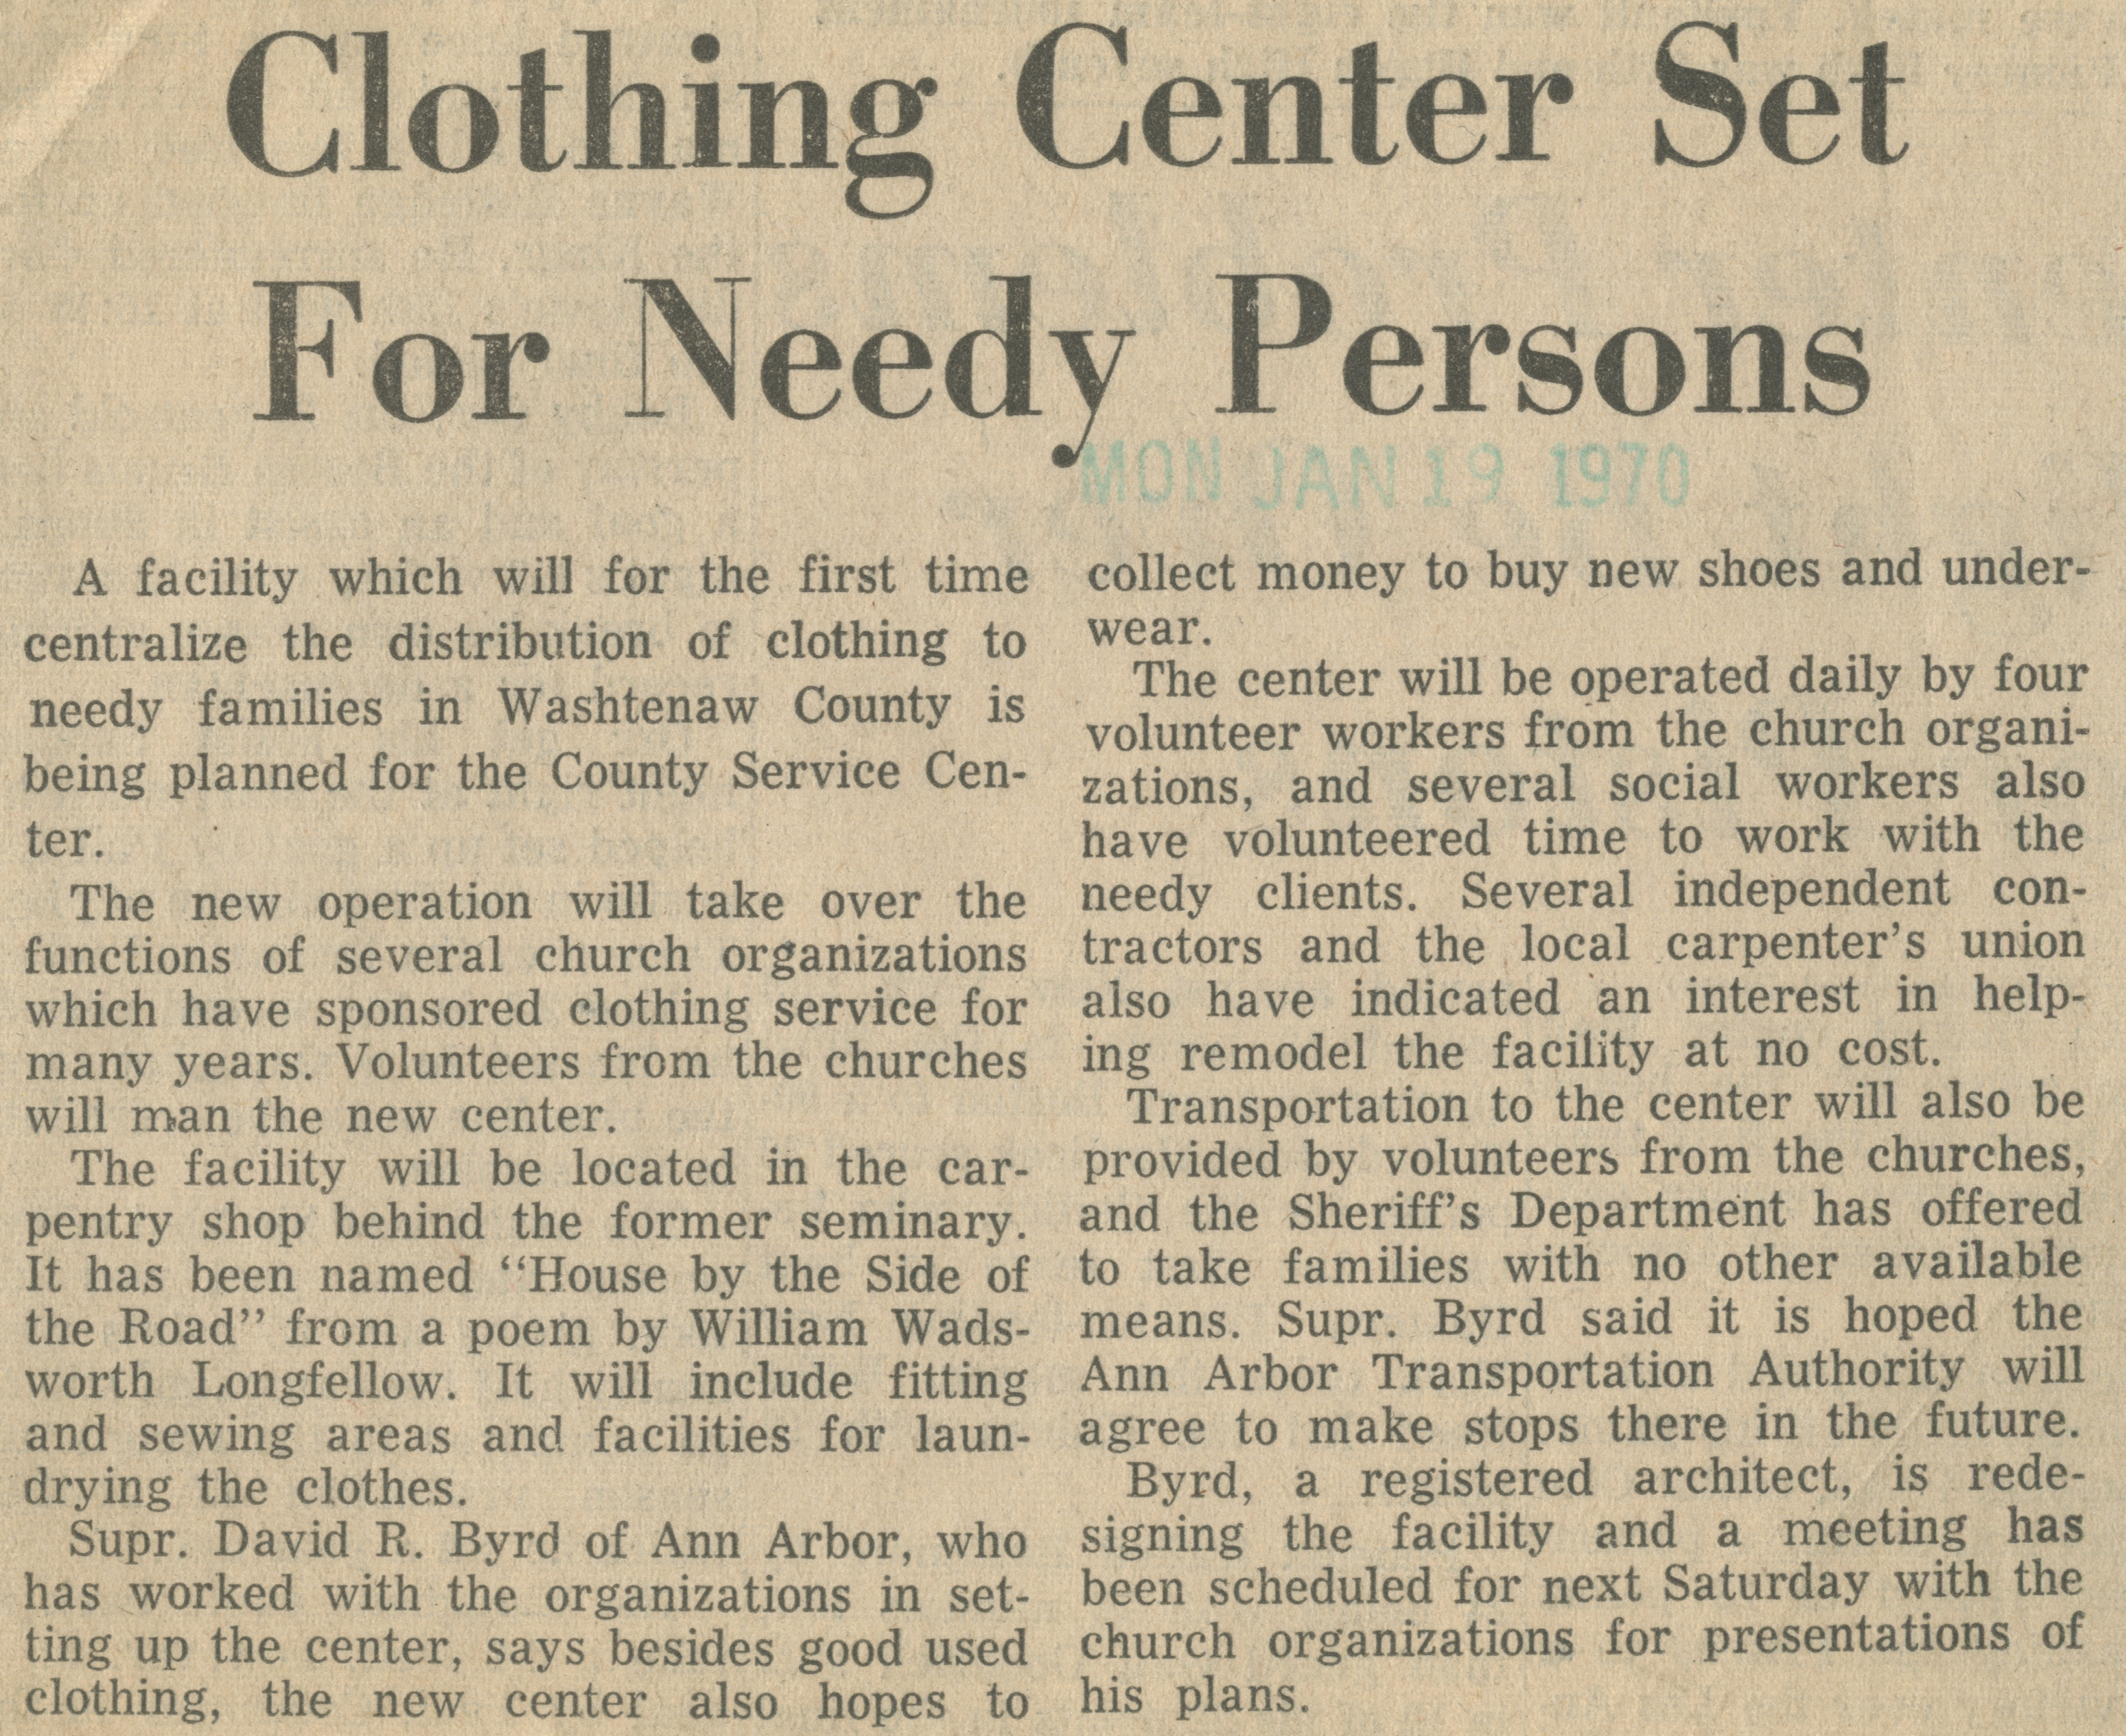 Clothing Center Set For Needy Persons image